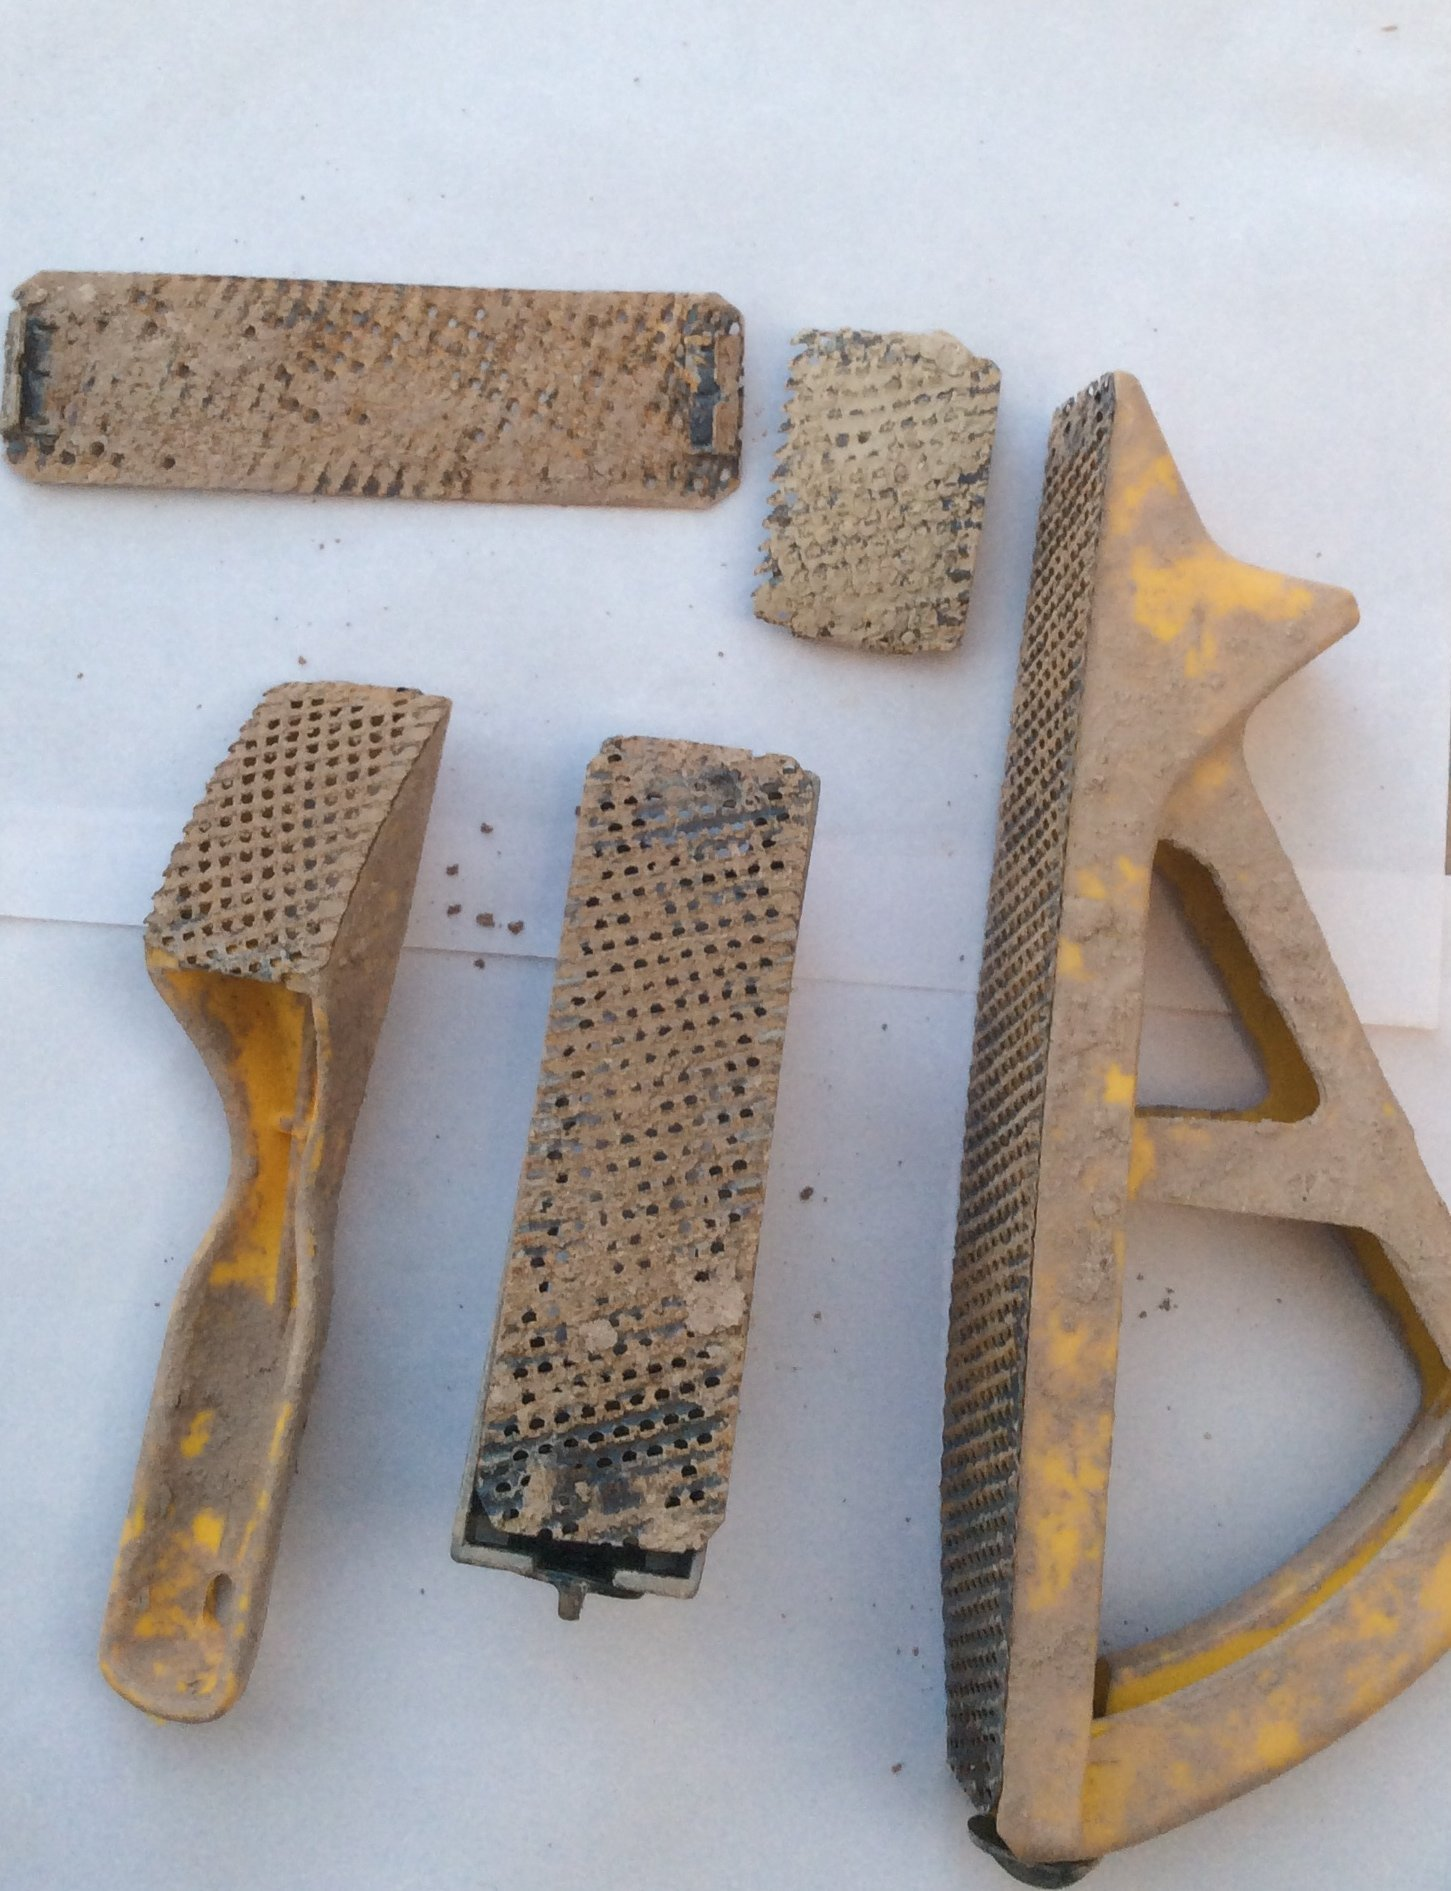 surforms (for rasping clay off larger surfaces